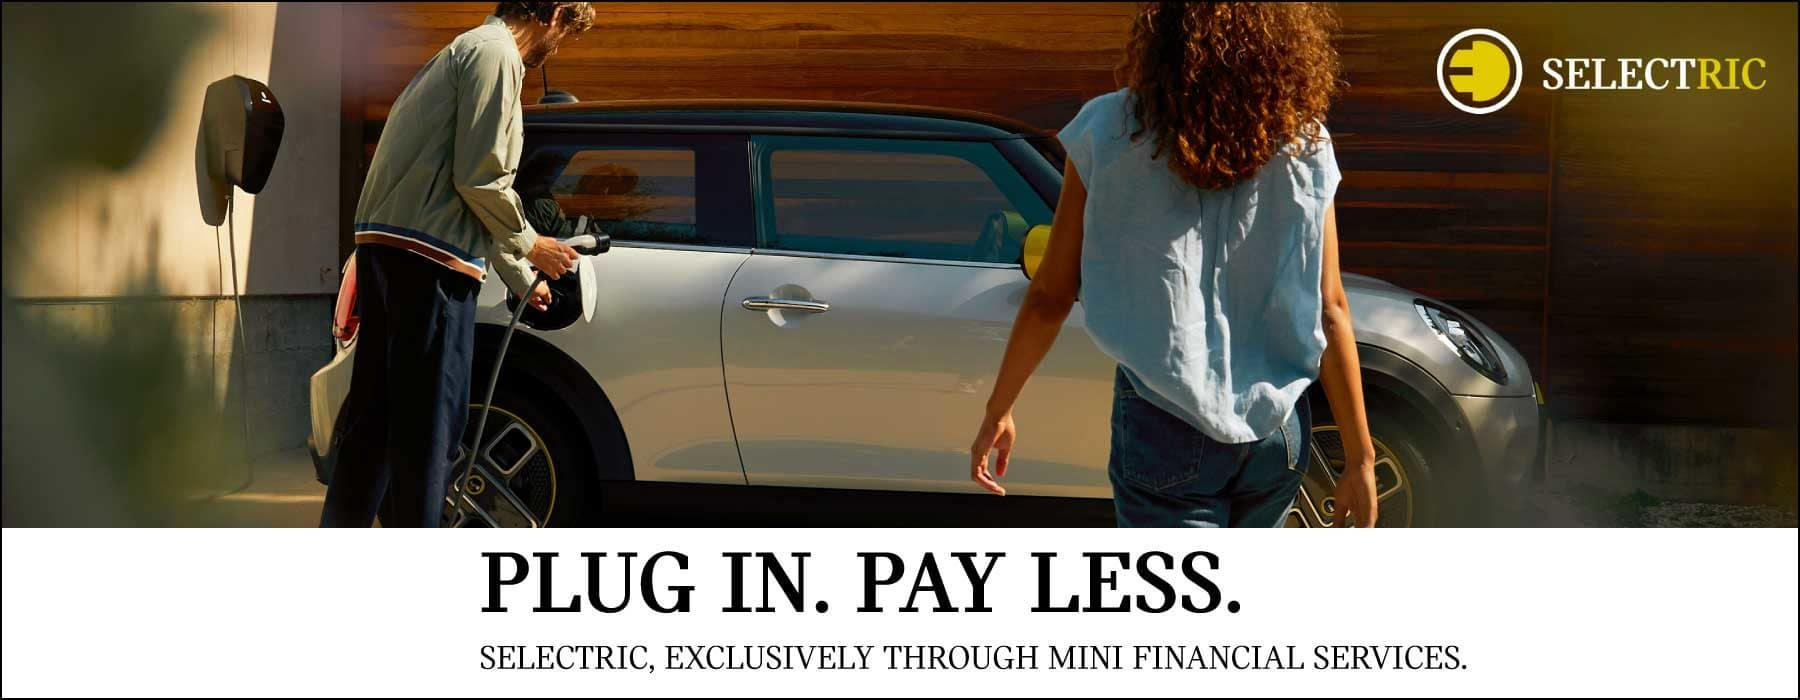 PLUG IN. PAY LESS. SELECTRIC, EXCULSIVELY THROUGH MINI FINANCIAL SERVICES.